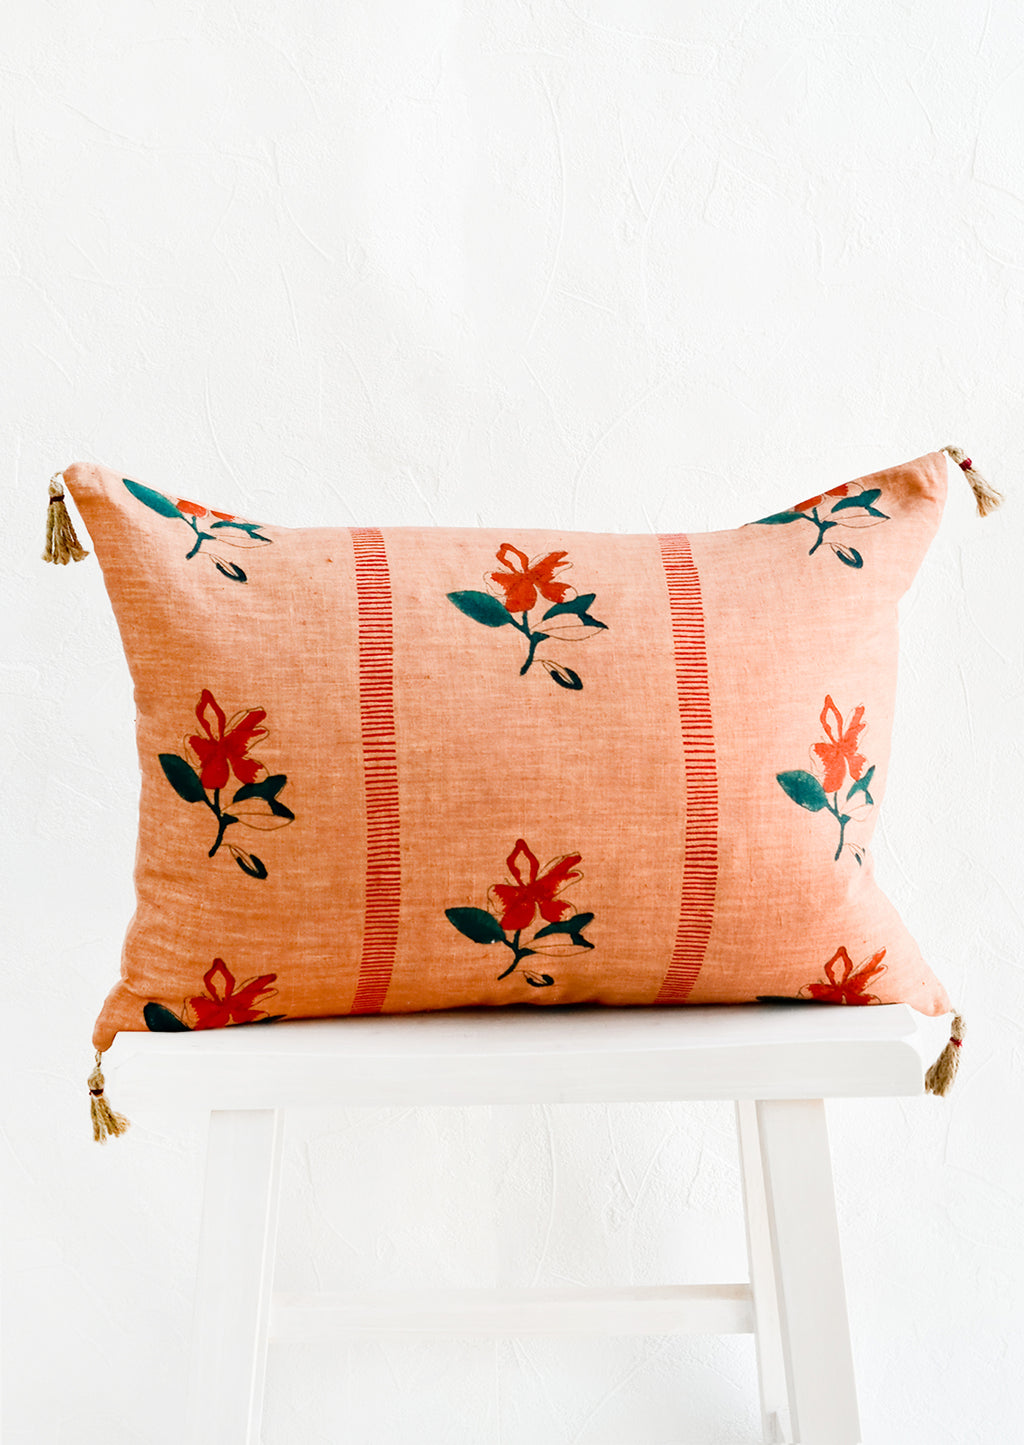 Clay Brown: Block printed lumbar pillow in clay brown fabric with red flowers